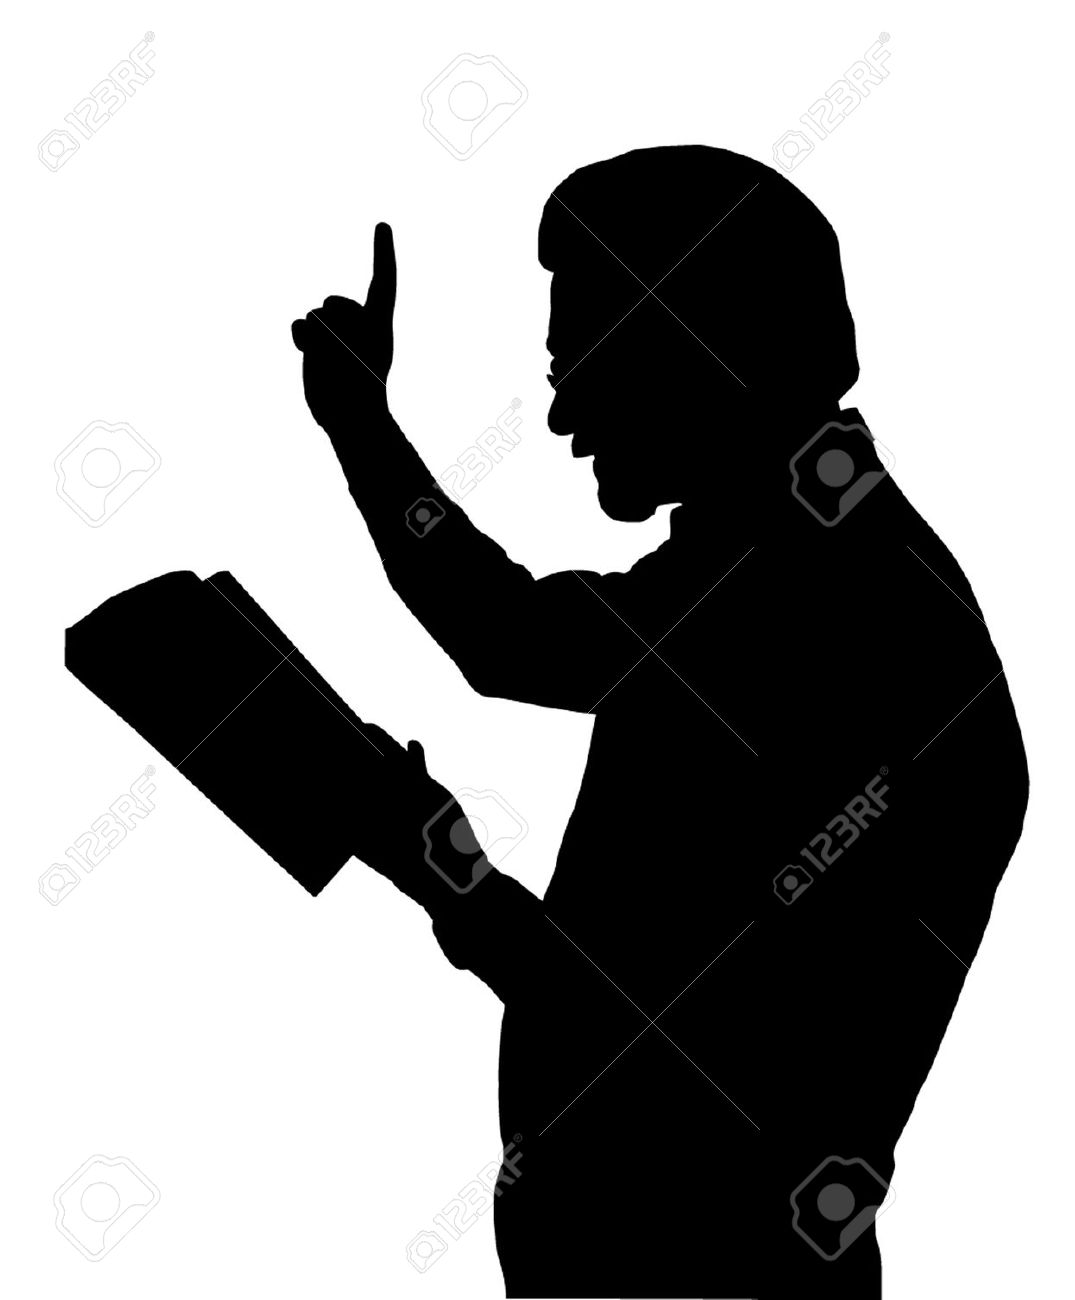 1075x1300 Bible People Silhouette Clipart